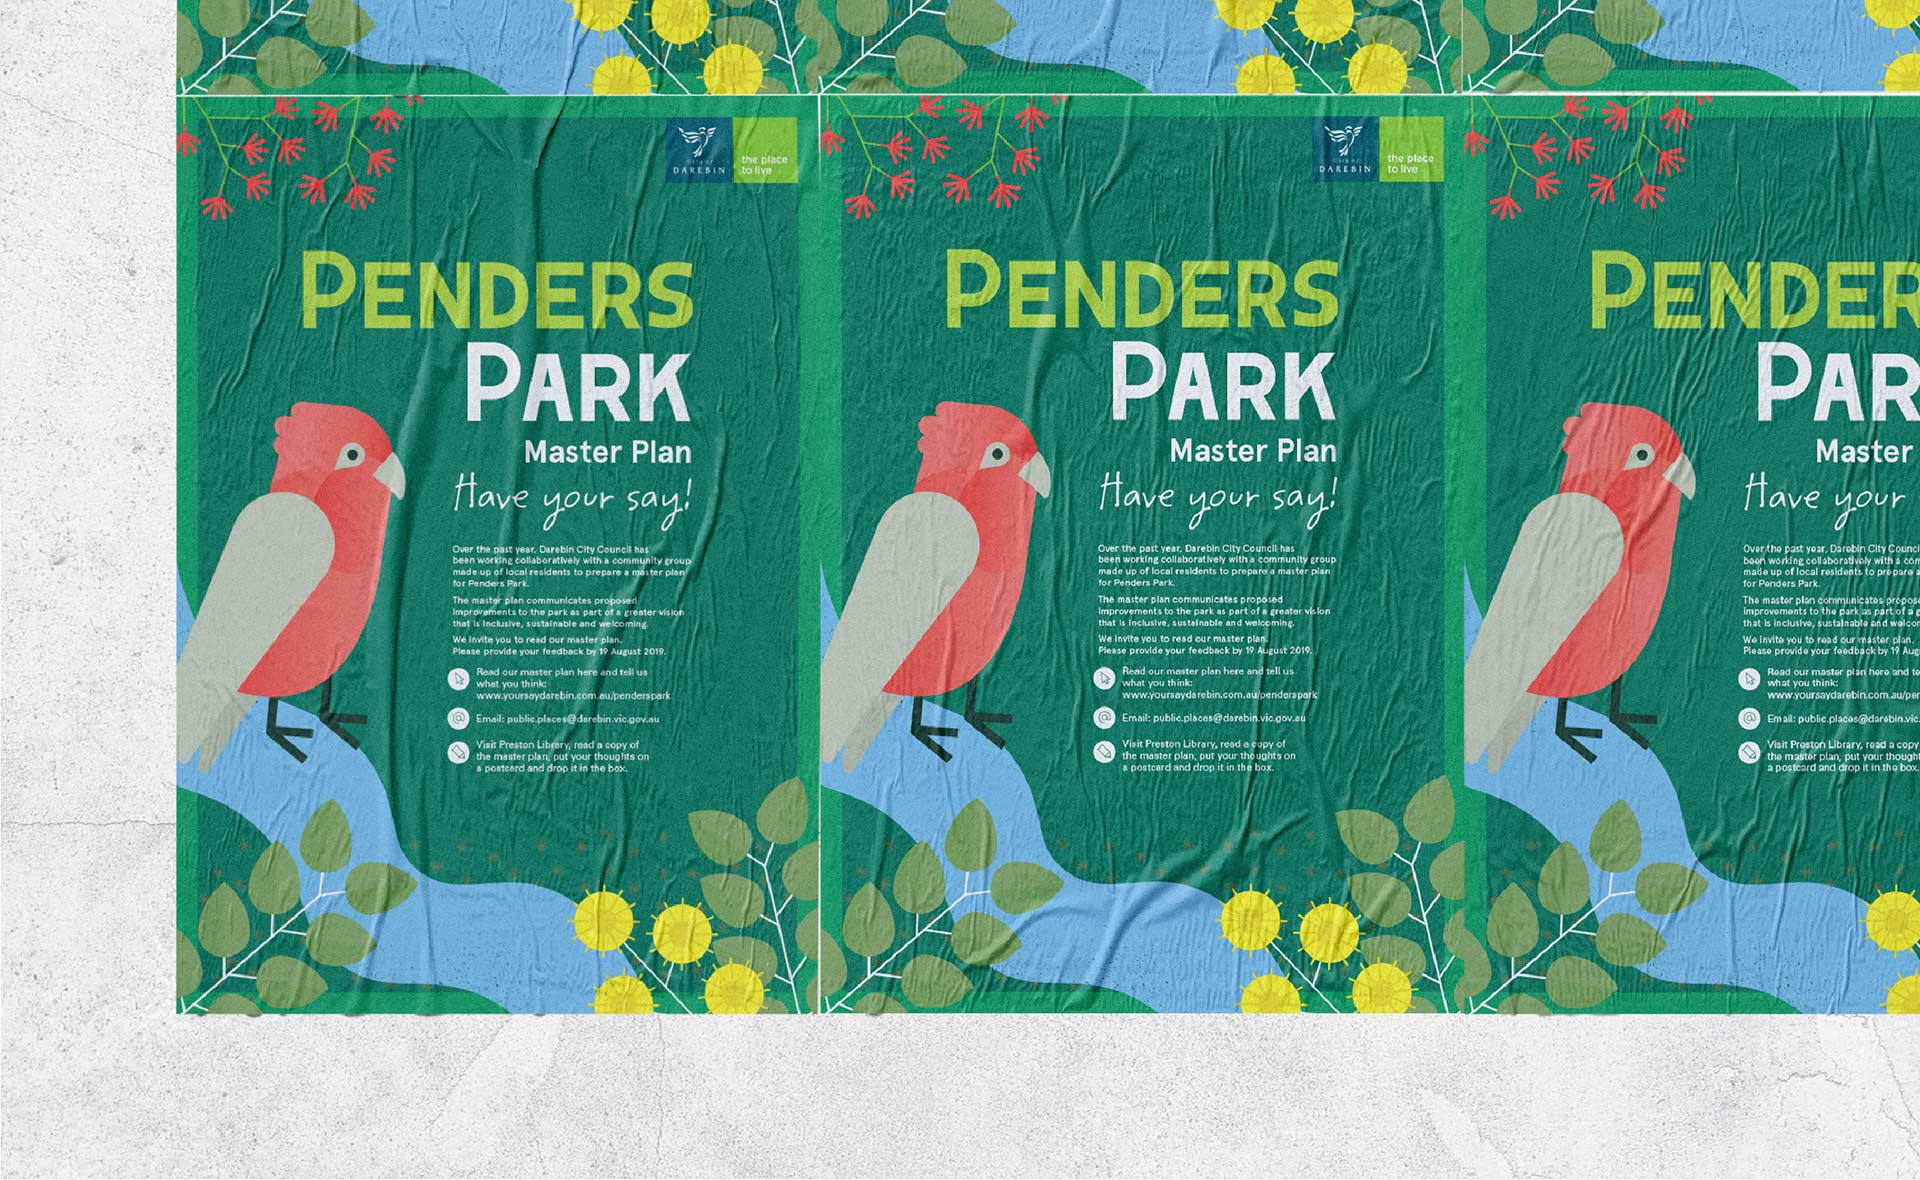 Penders Park Master Plan Event Poster